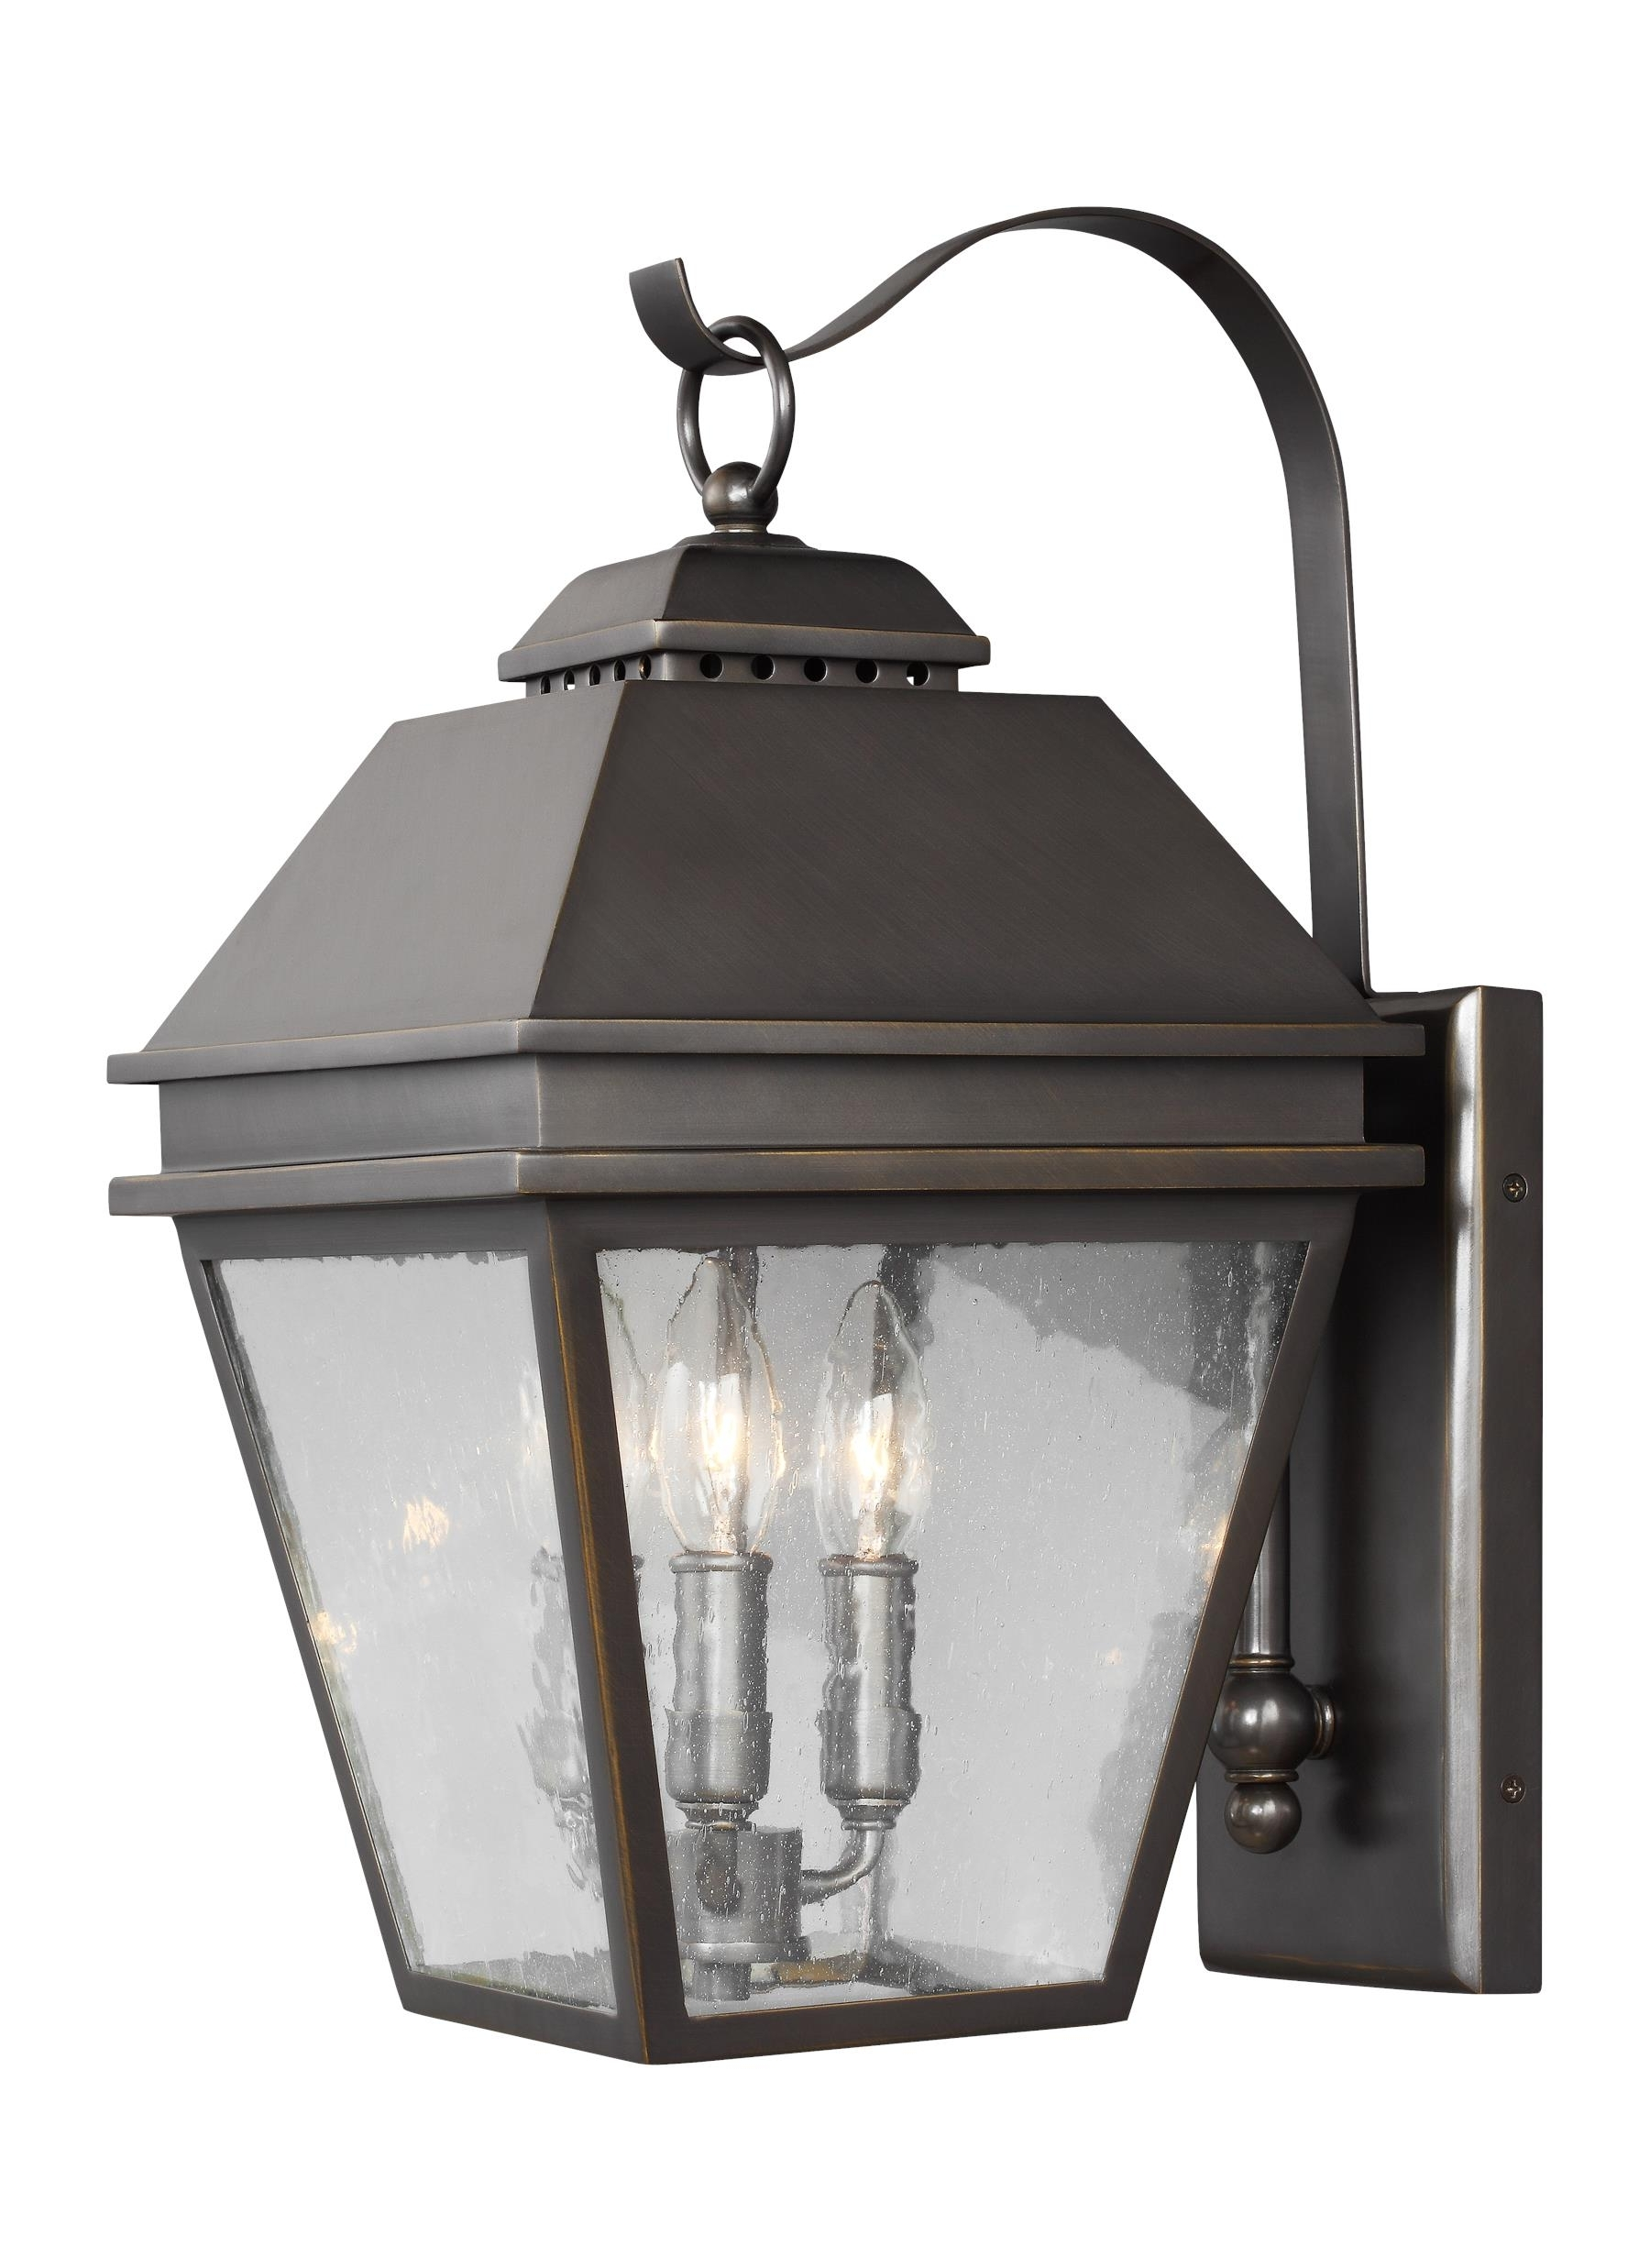 Outdoor Wall Lanterns For 2019 Ol13501Anbz,3 – Light Outdoor Wall Lantern,antique Bronze (Gallery 17 of 20)